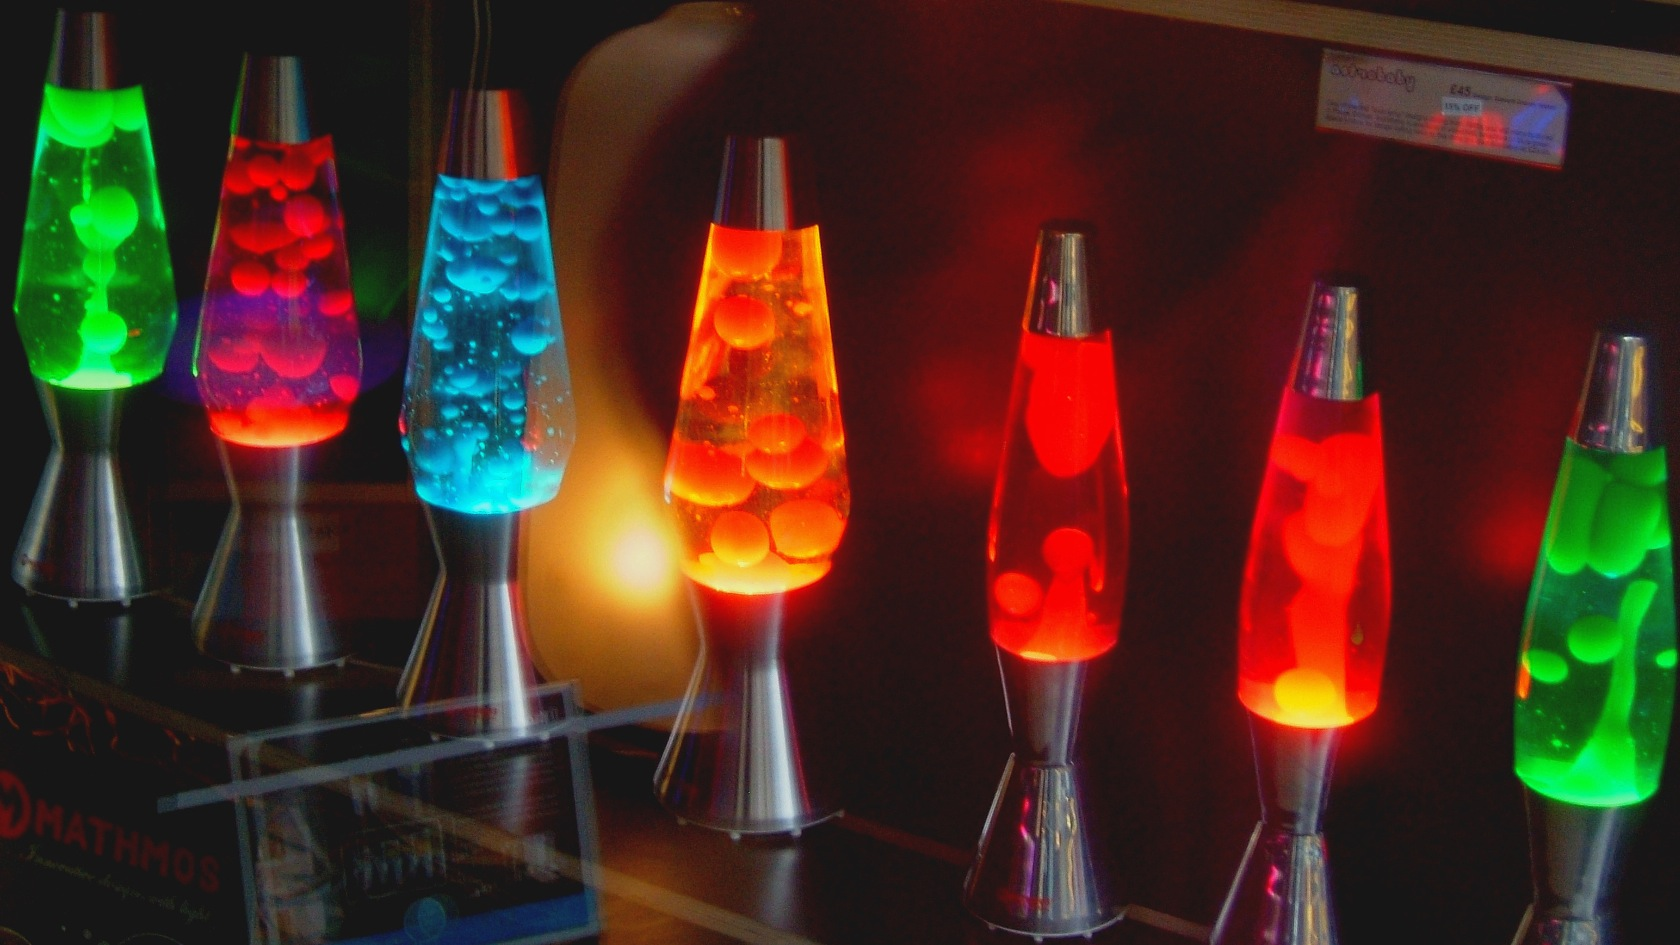 30  Beauty Cool Lava Lamps In The for Cool Lava Lamps In The Dark  83fiz